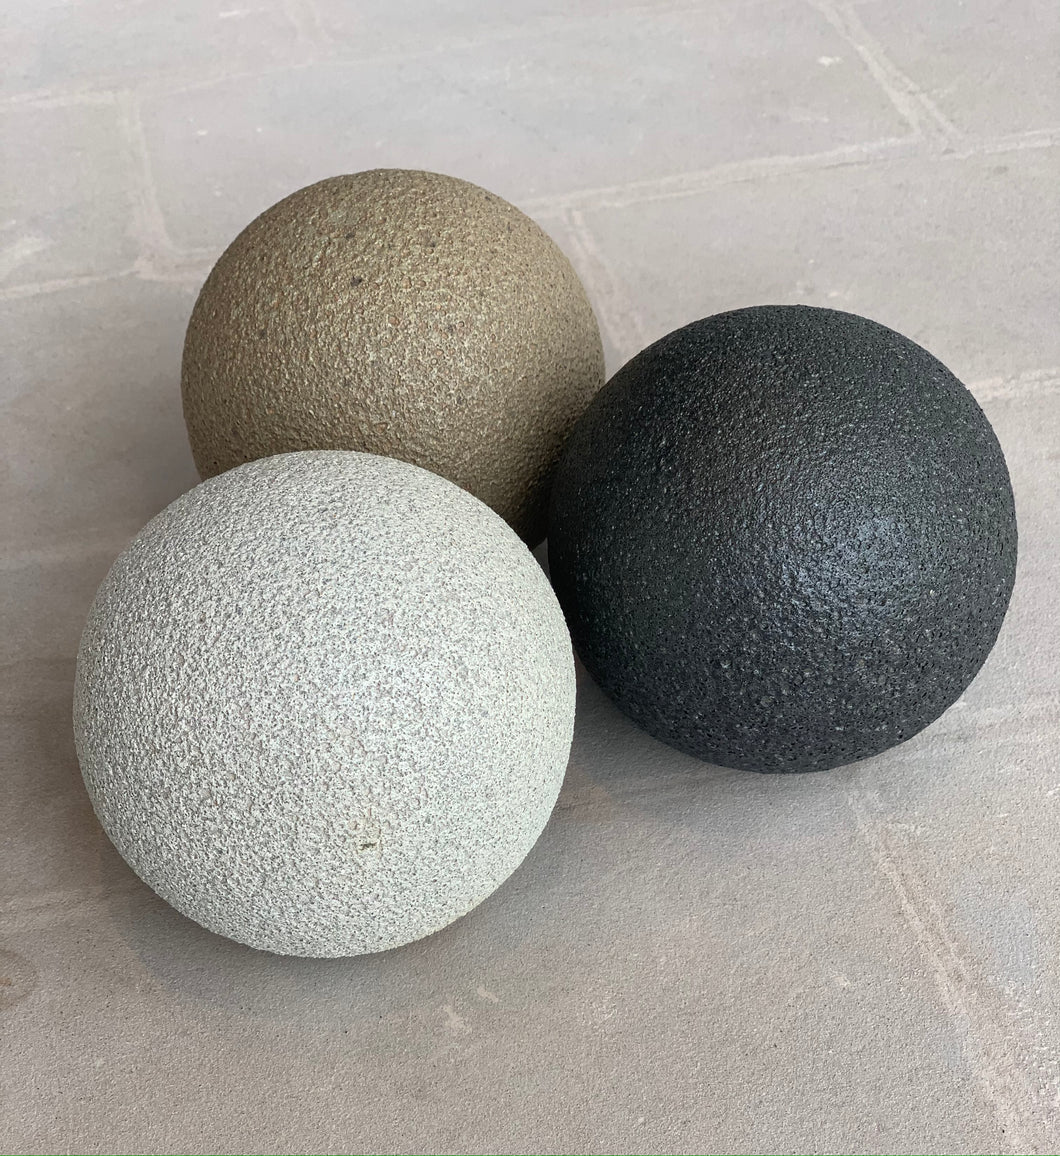 Fire pit orbs  in 3 colors: sand, white ash, & charcoal